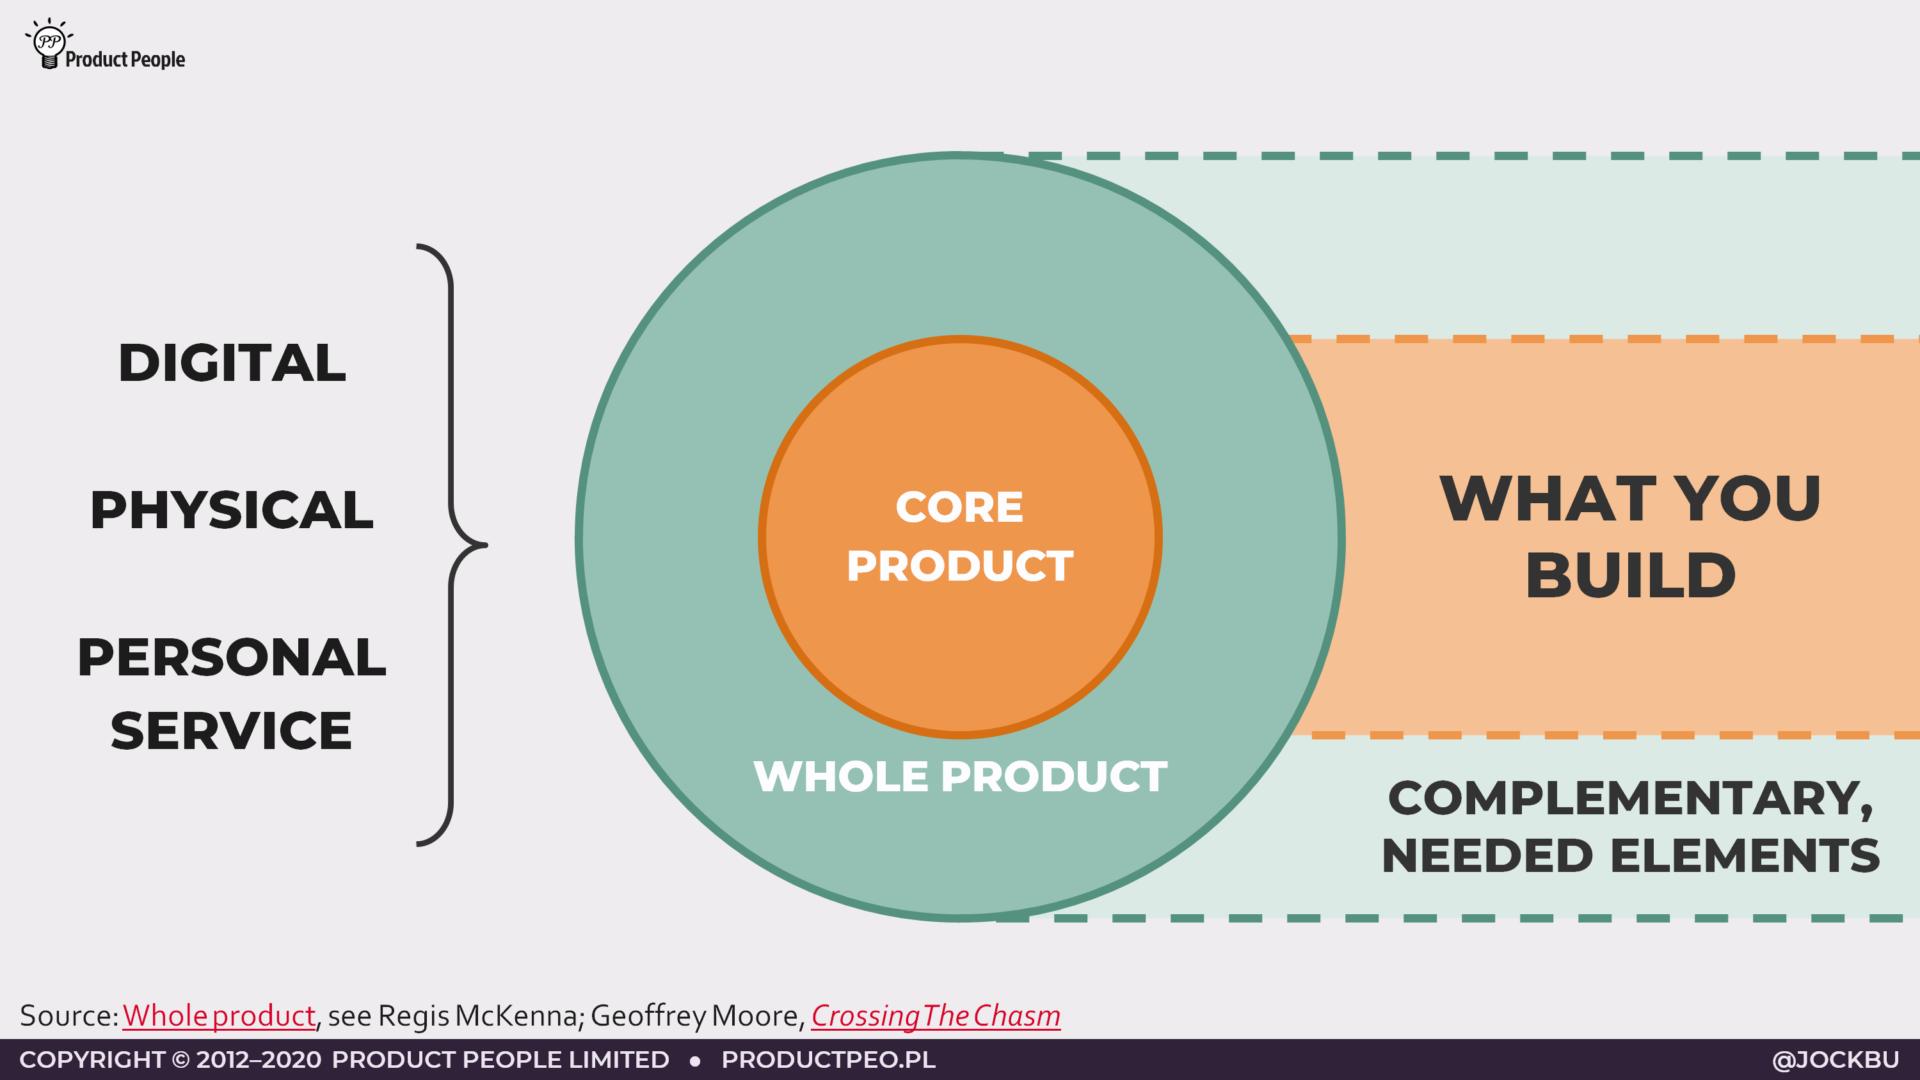 Core product and whole product